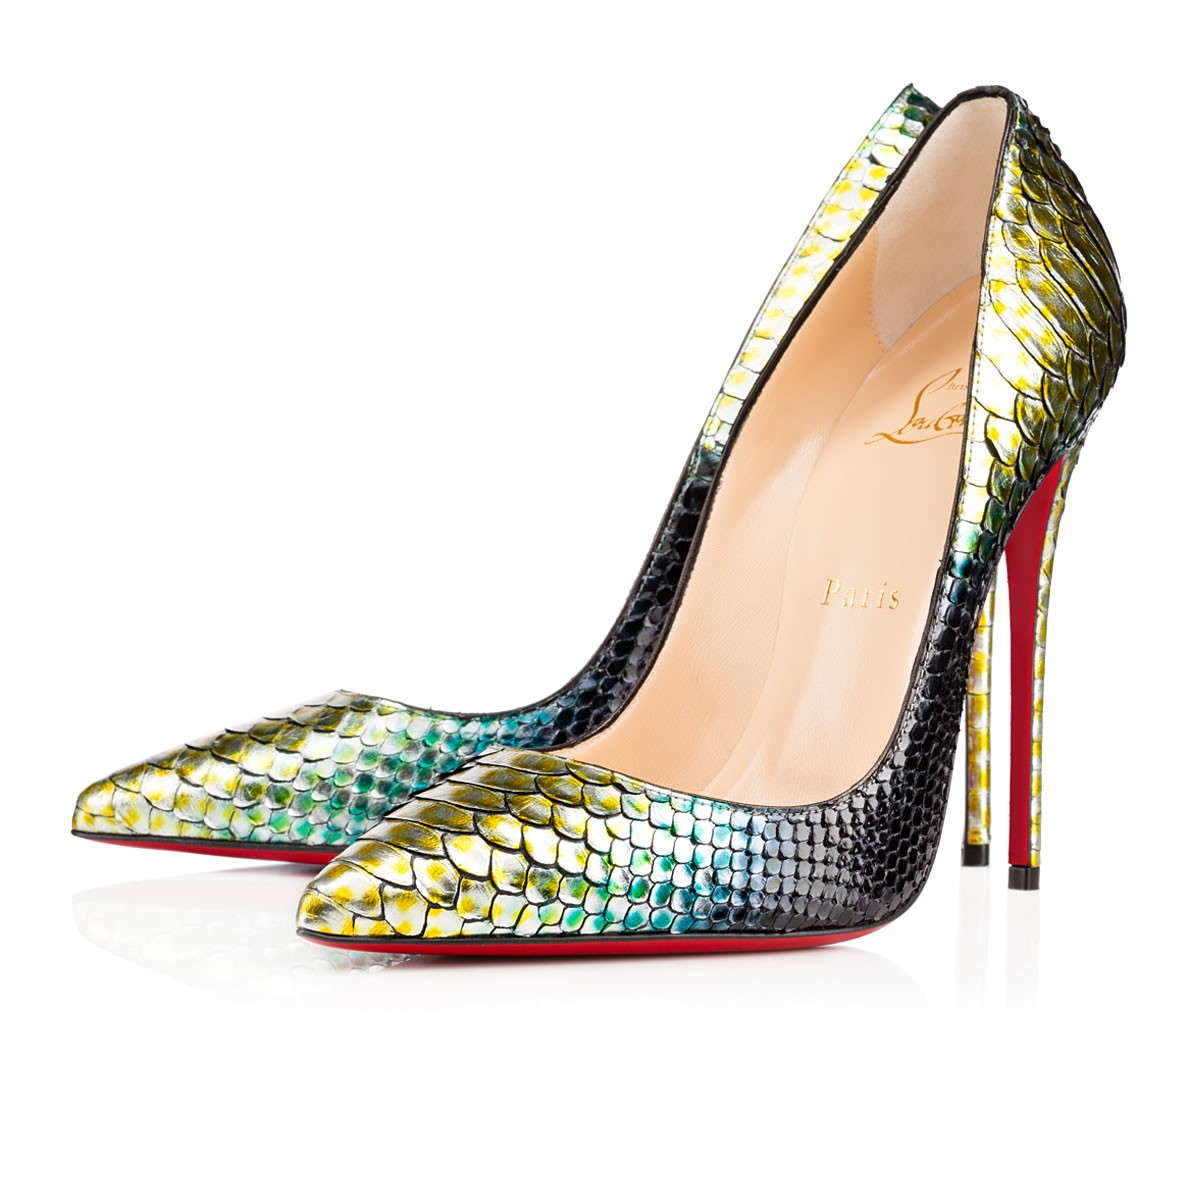 From Fendi to Louis Vuitton: Top 10 Women Designer Shoes ...